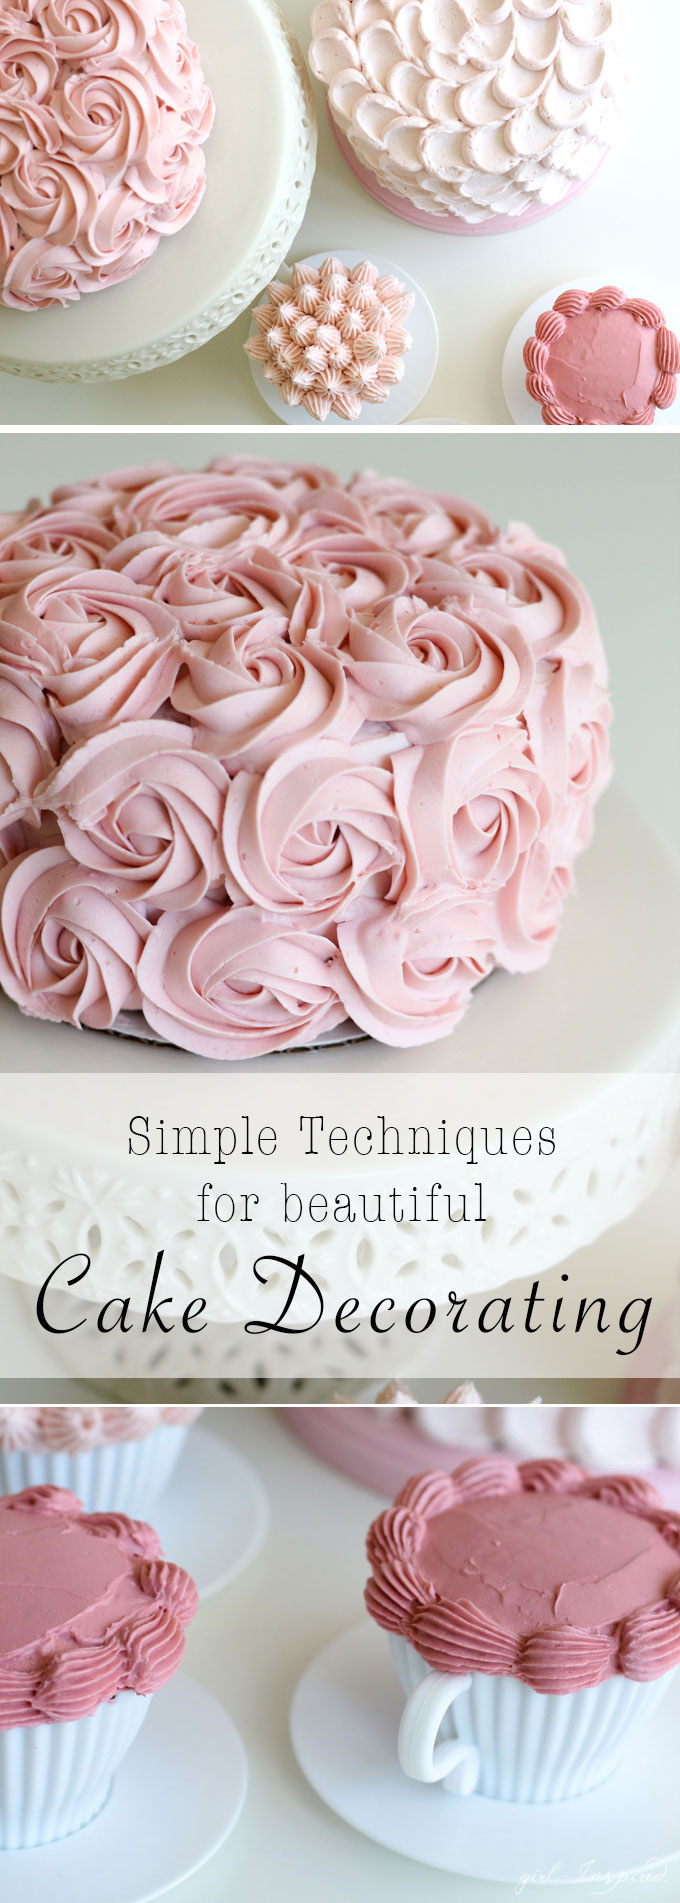 What Cake Decorating Tips Make What : Simple and Stunning Cake Decorating Techniques - girl ...